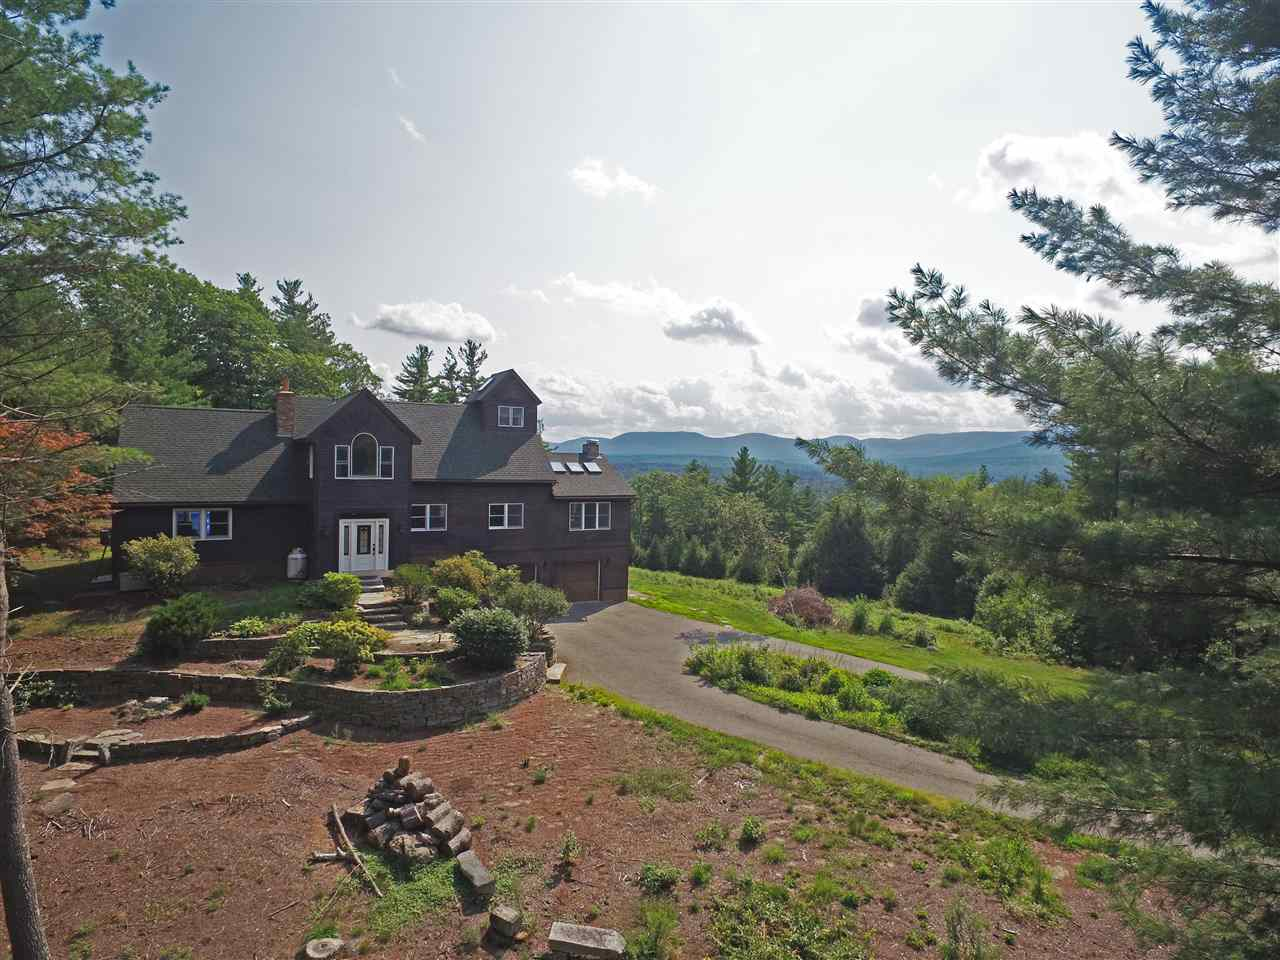 NEWBURY NH Homes for sale